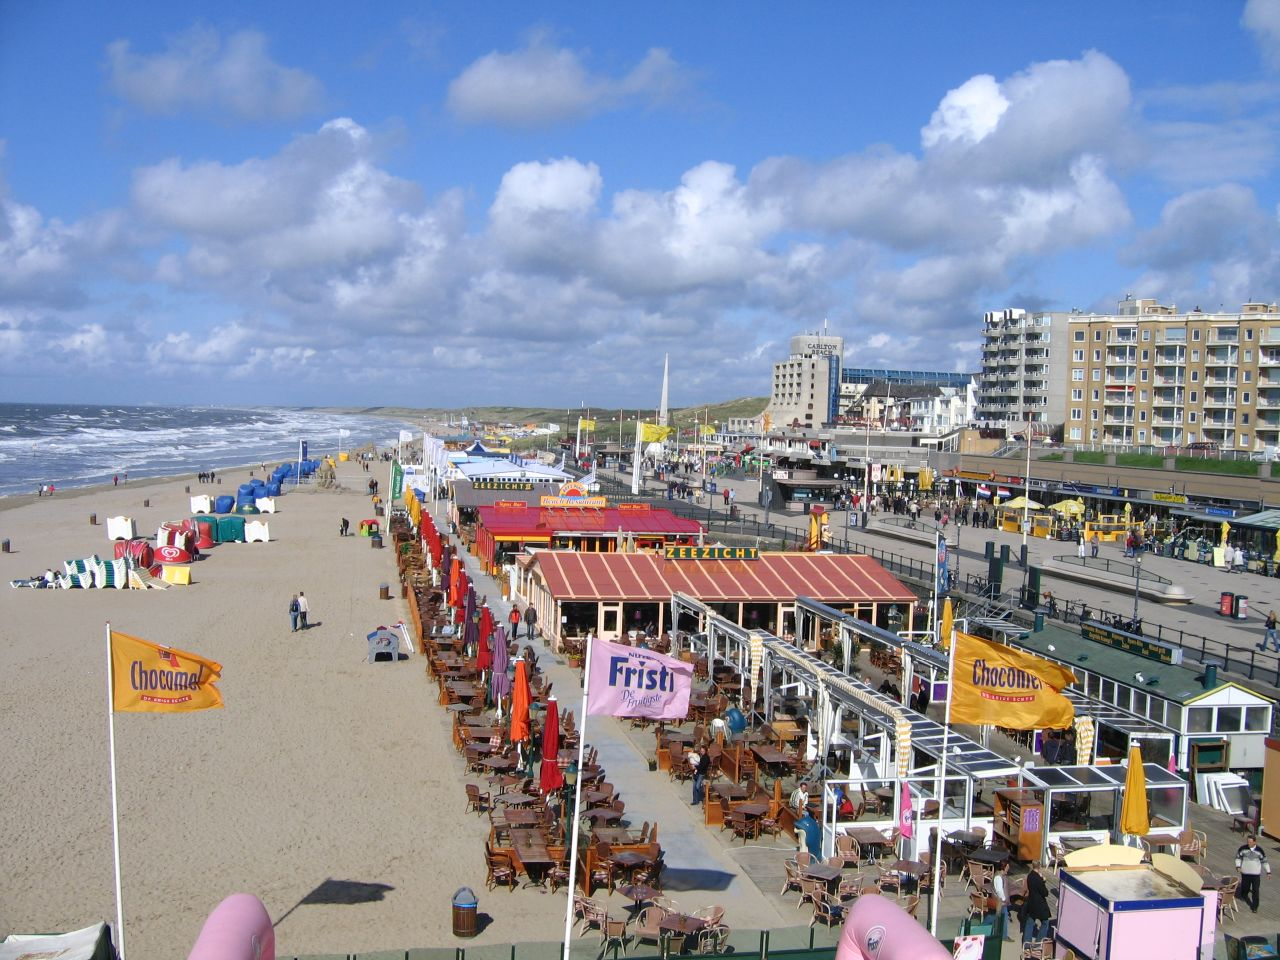 Scheveningen Beach Restaurants The Hague Scheveningen